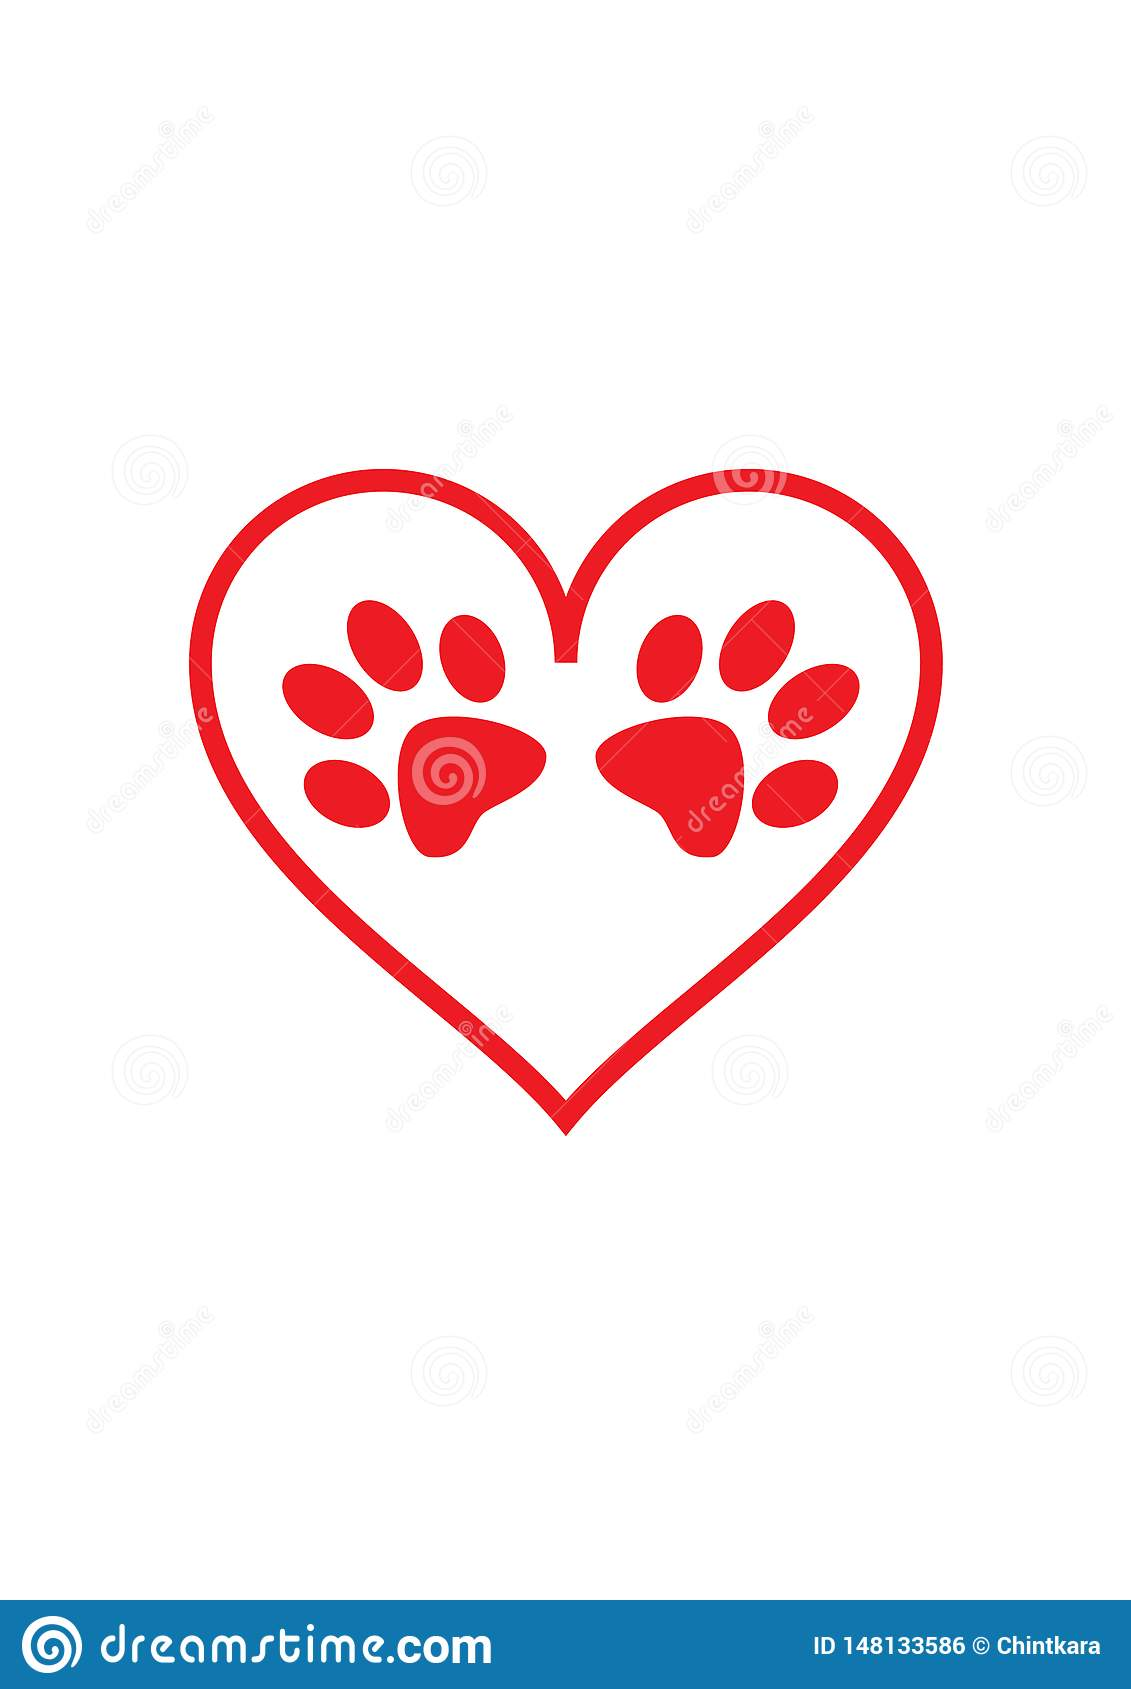 Two Red Paw Shapes Inside Red Heart Shape Stock Vector